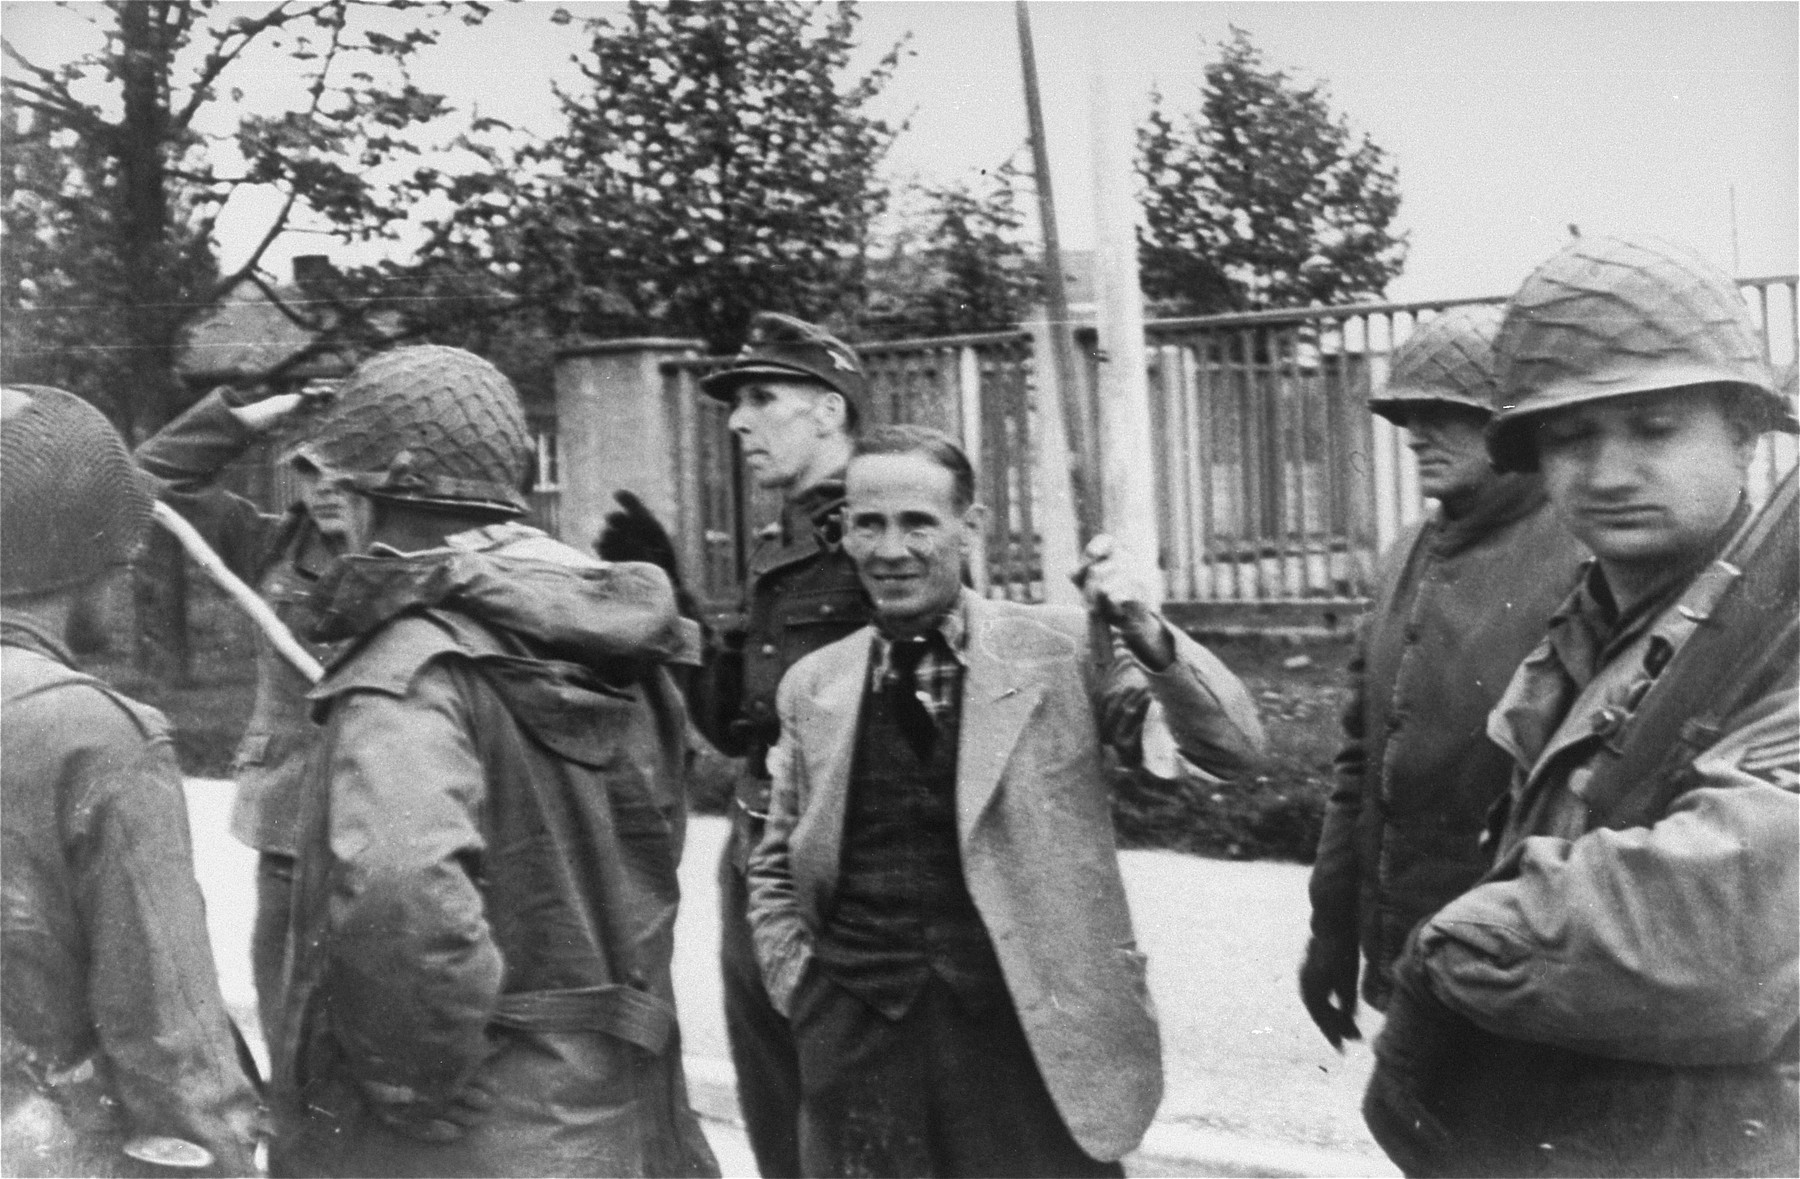 Brigadier General Henning Linden, assistant commanding general, 42nd Rainbow Infantry division, with his back to the camera, accepting the surrender of SS Lt. Wickert.  The man in the middle is ICRC (International Committee of the Red Cross) representative Dr. Vincent  Maurer, acting as a translator for the surrendering Germans. [oversized print]